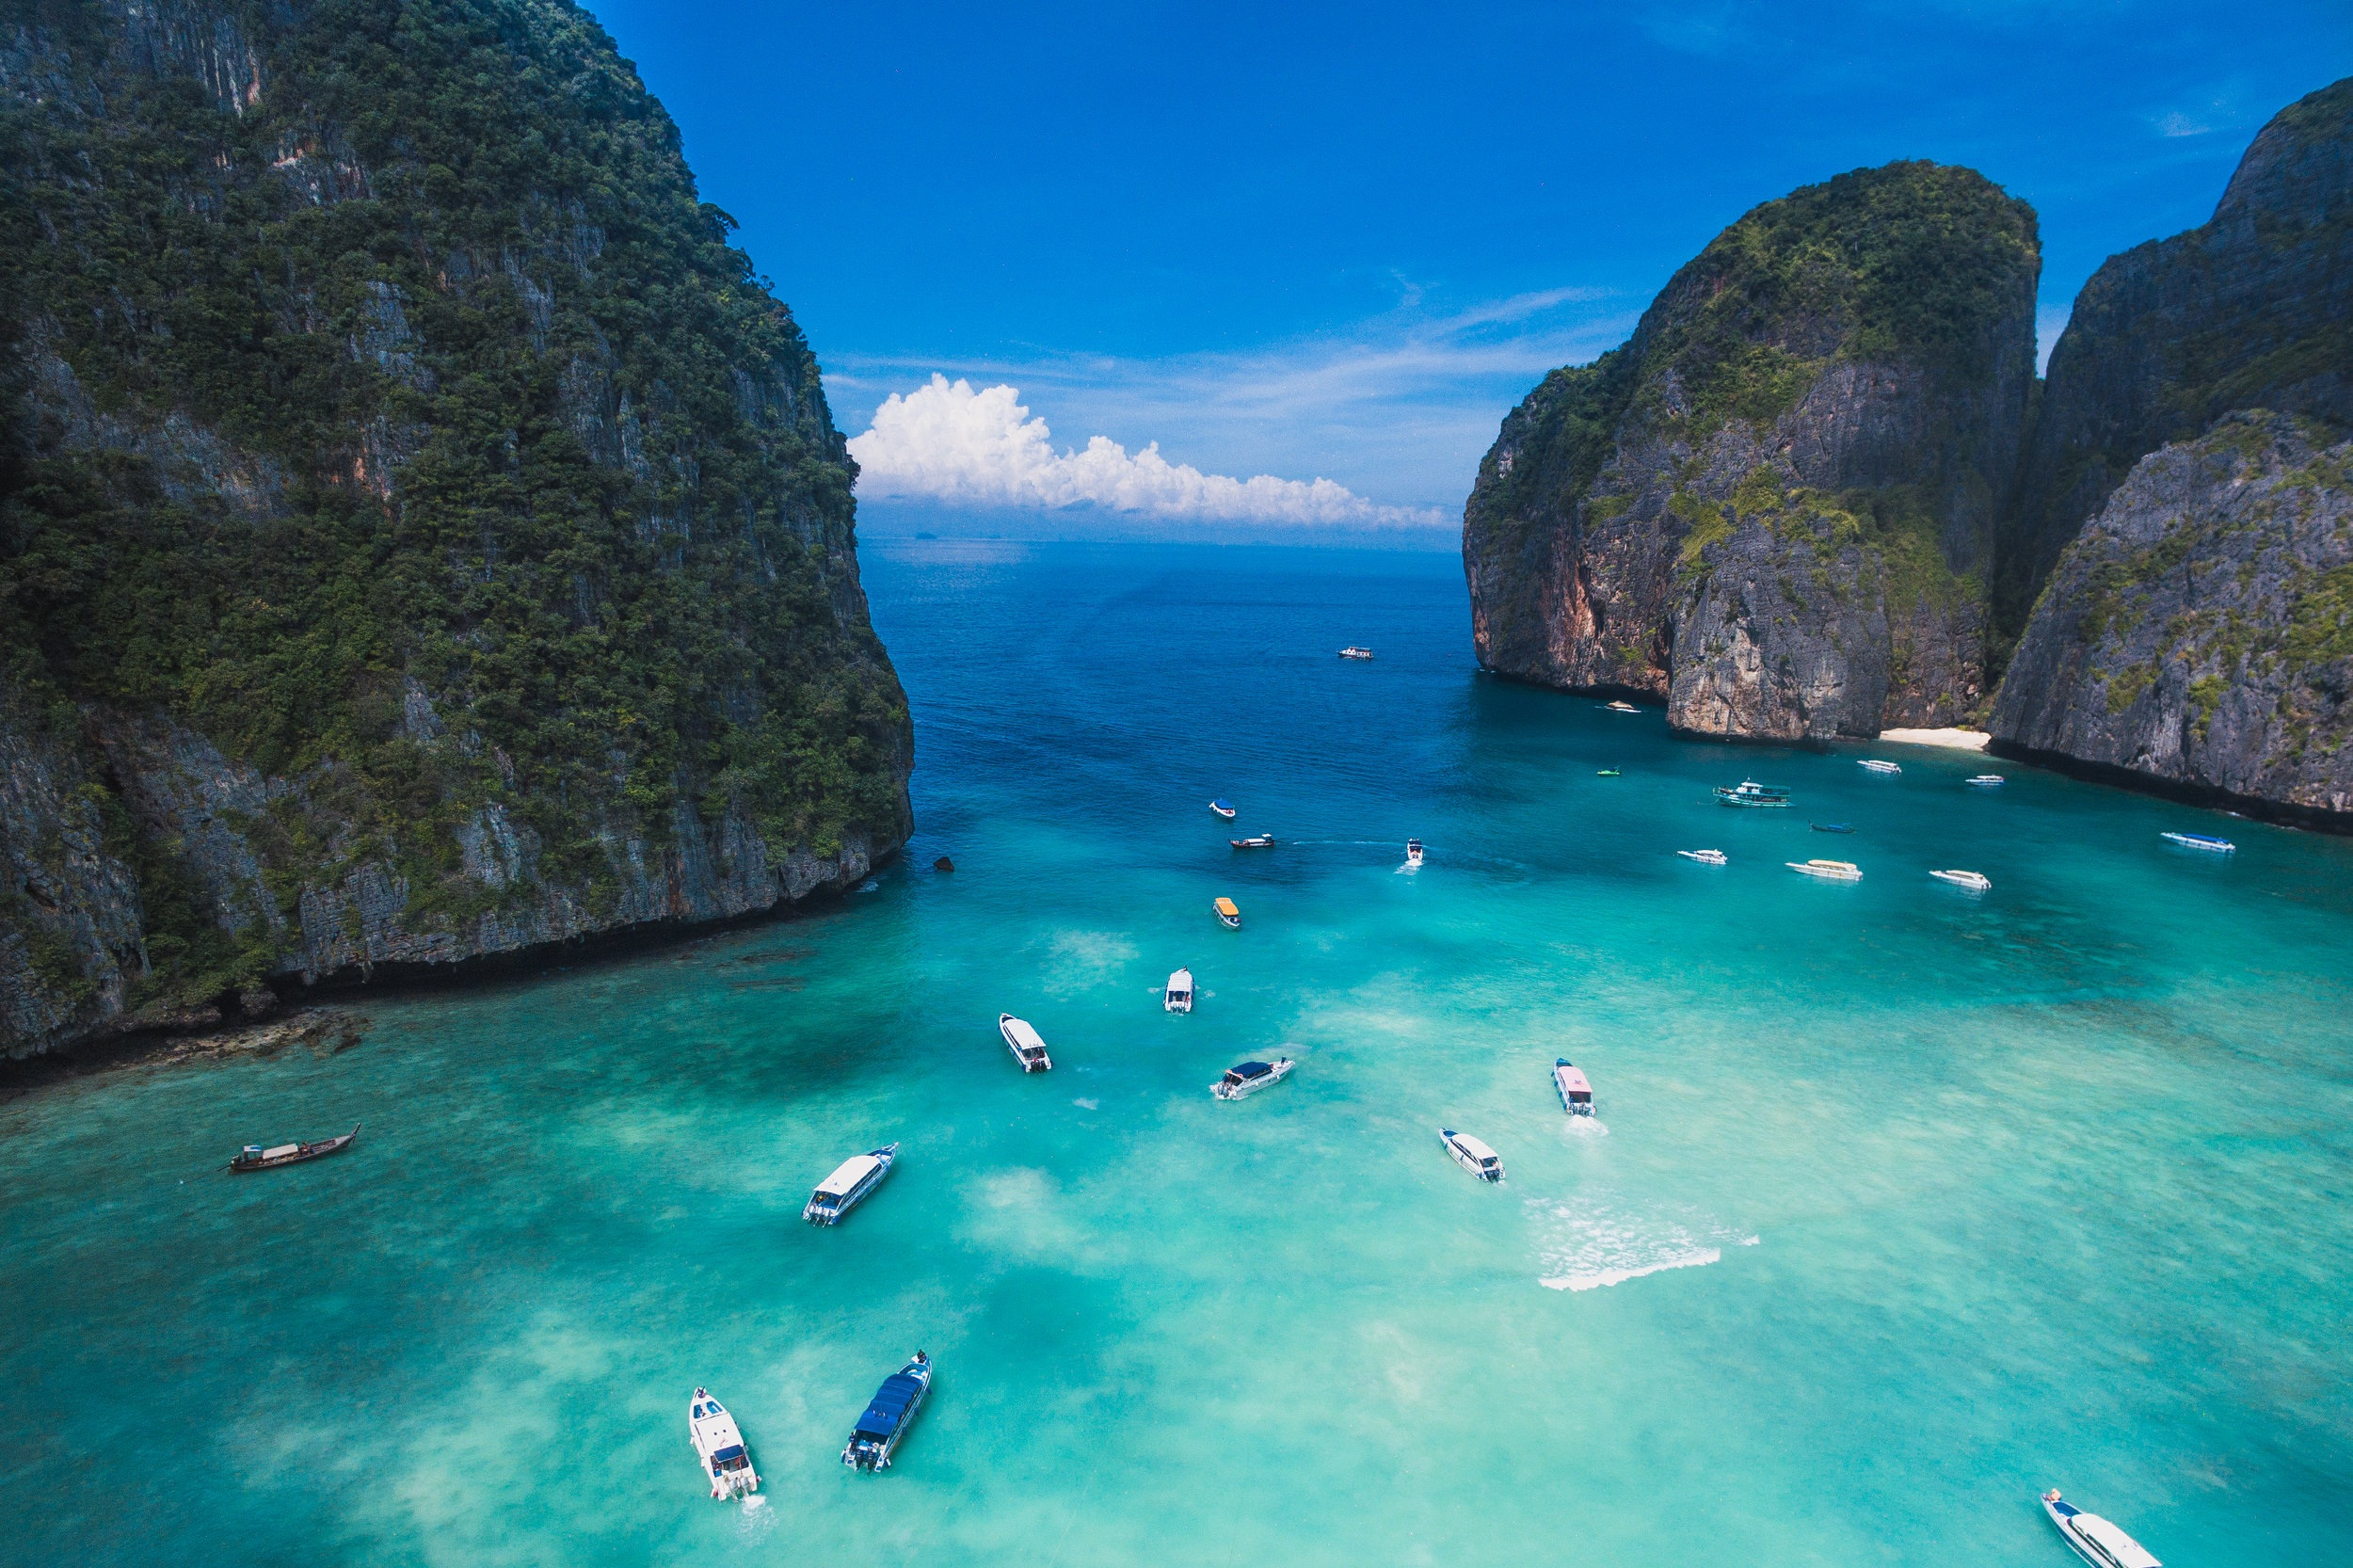 Thailand - Explore tropical islands and eat Thai cuisine to your hearts content with us in Thailand!Next Experience: 3rd February - 10th February 2020 | 1 & 2 Week OptionsExperiences from £2049Deposit £200